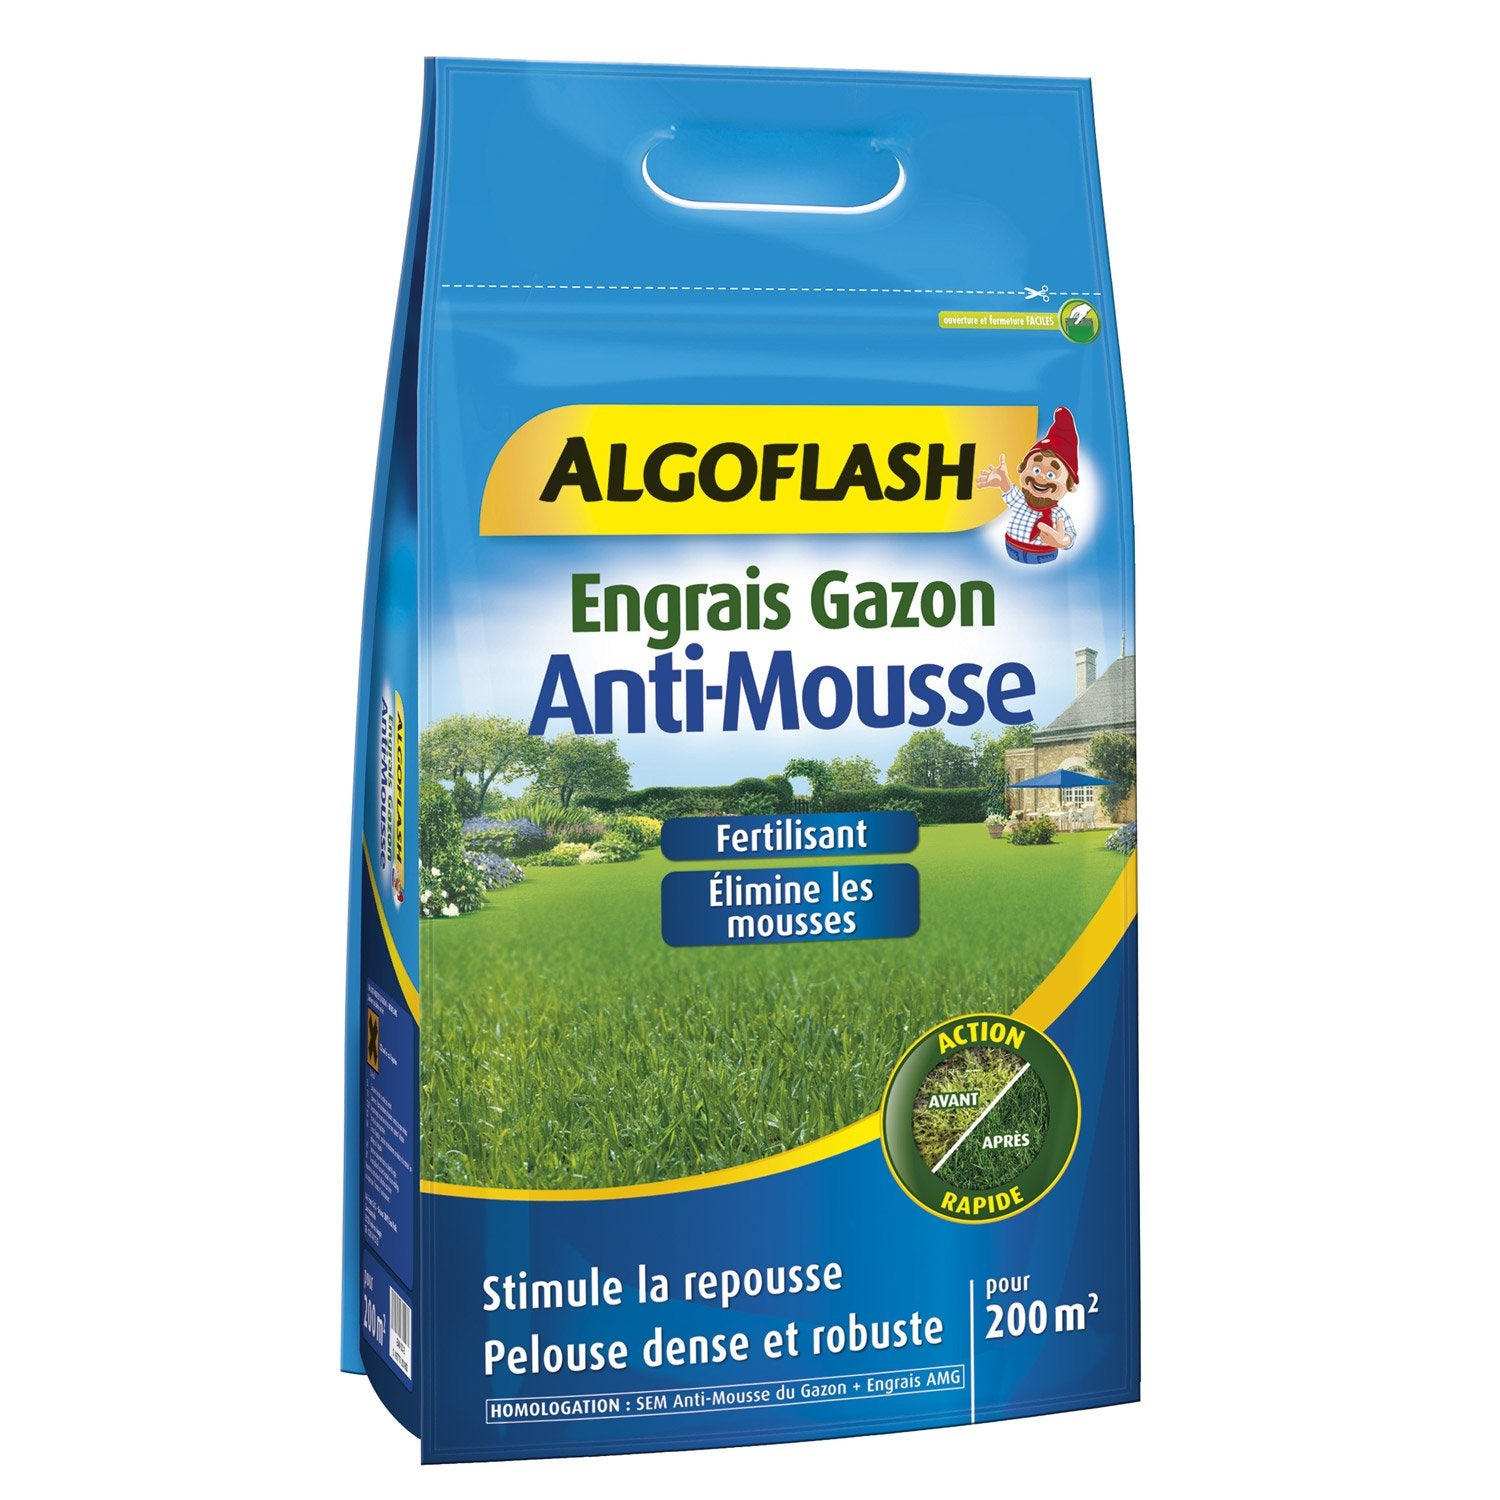 Engrais gazon anti mousse algoflash 12kg 200m2 leroy merlin - Anti mousse gazon chaux ...